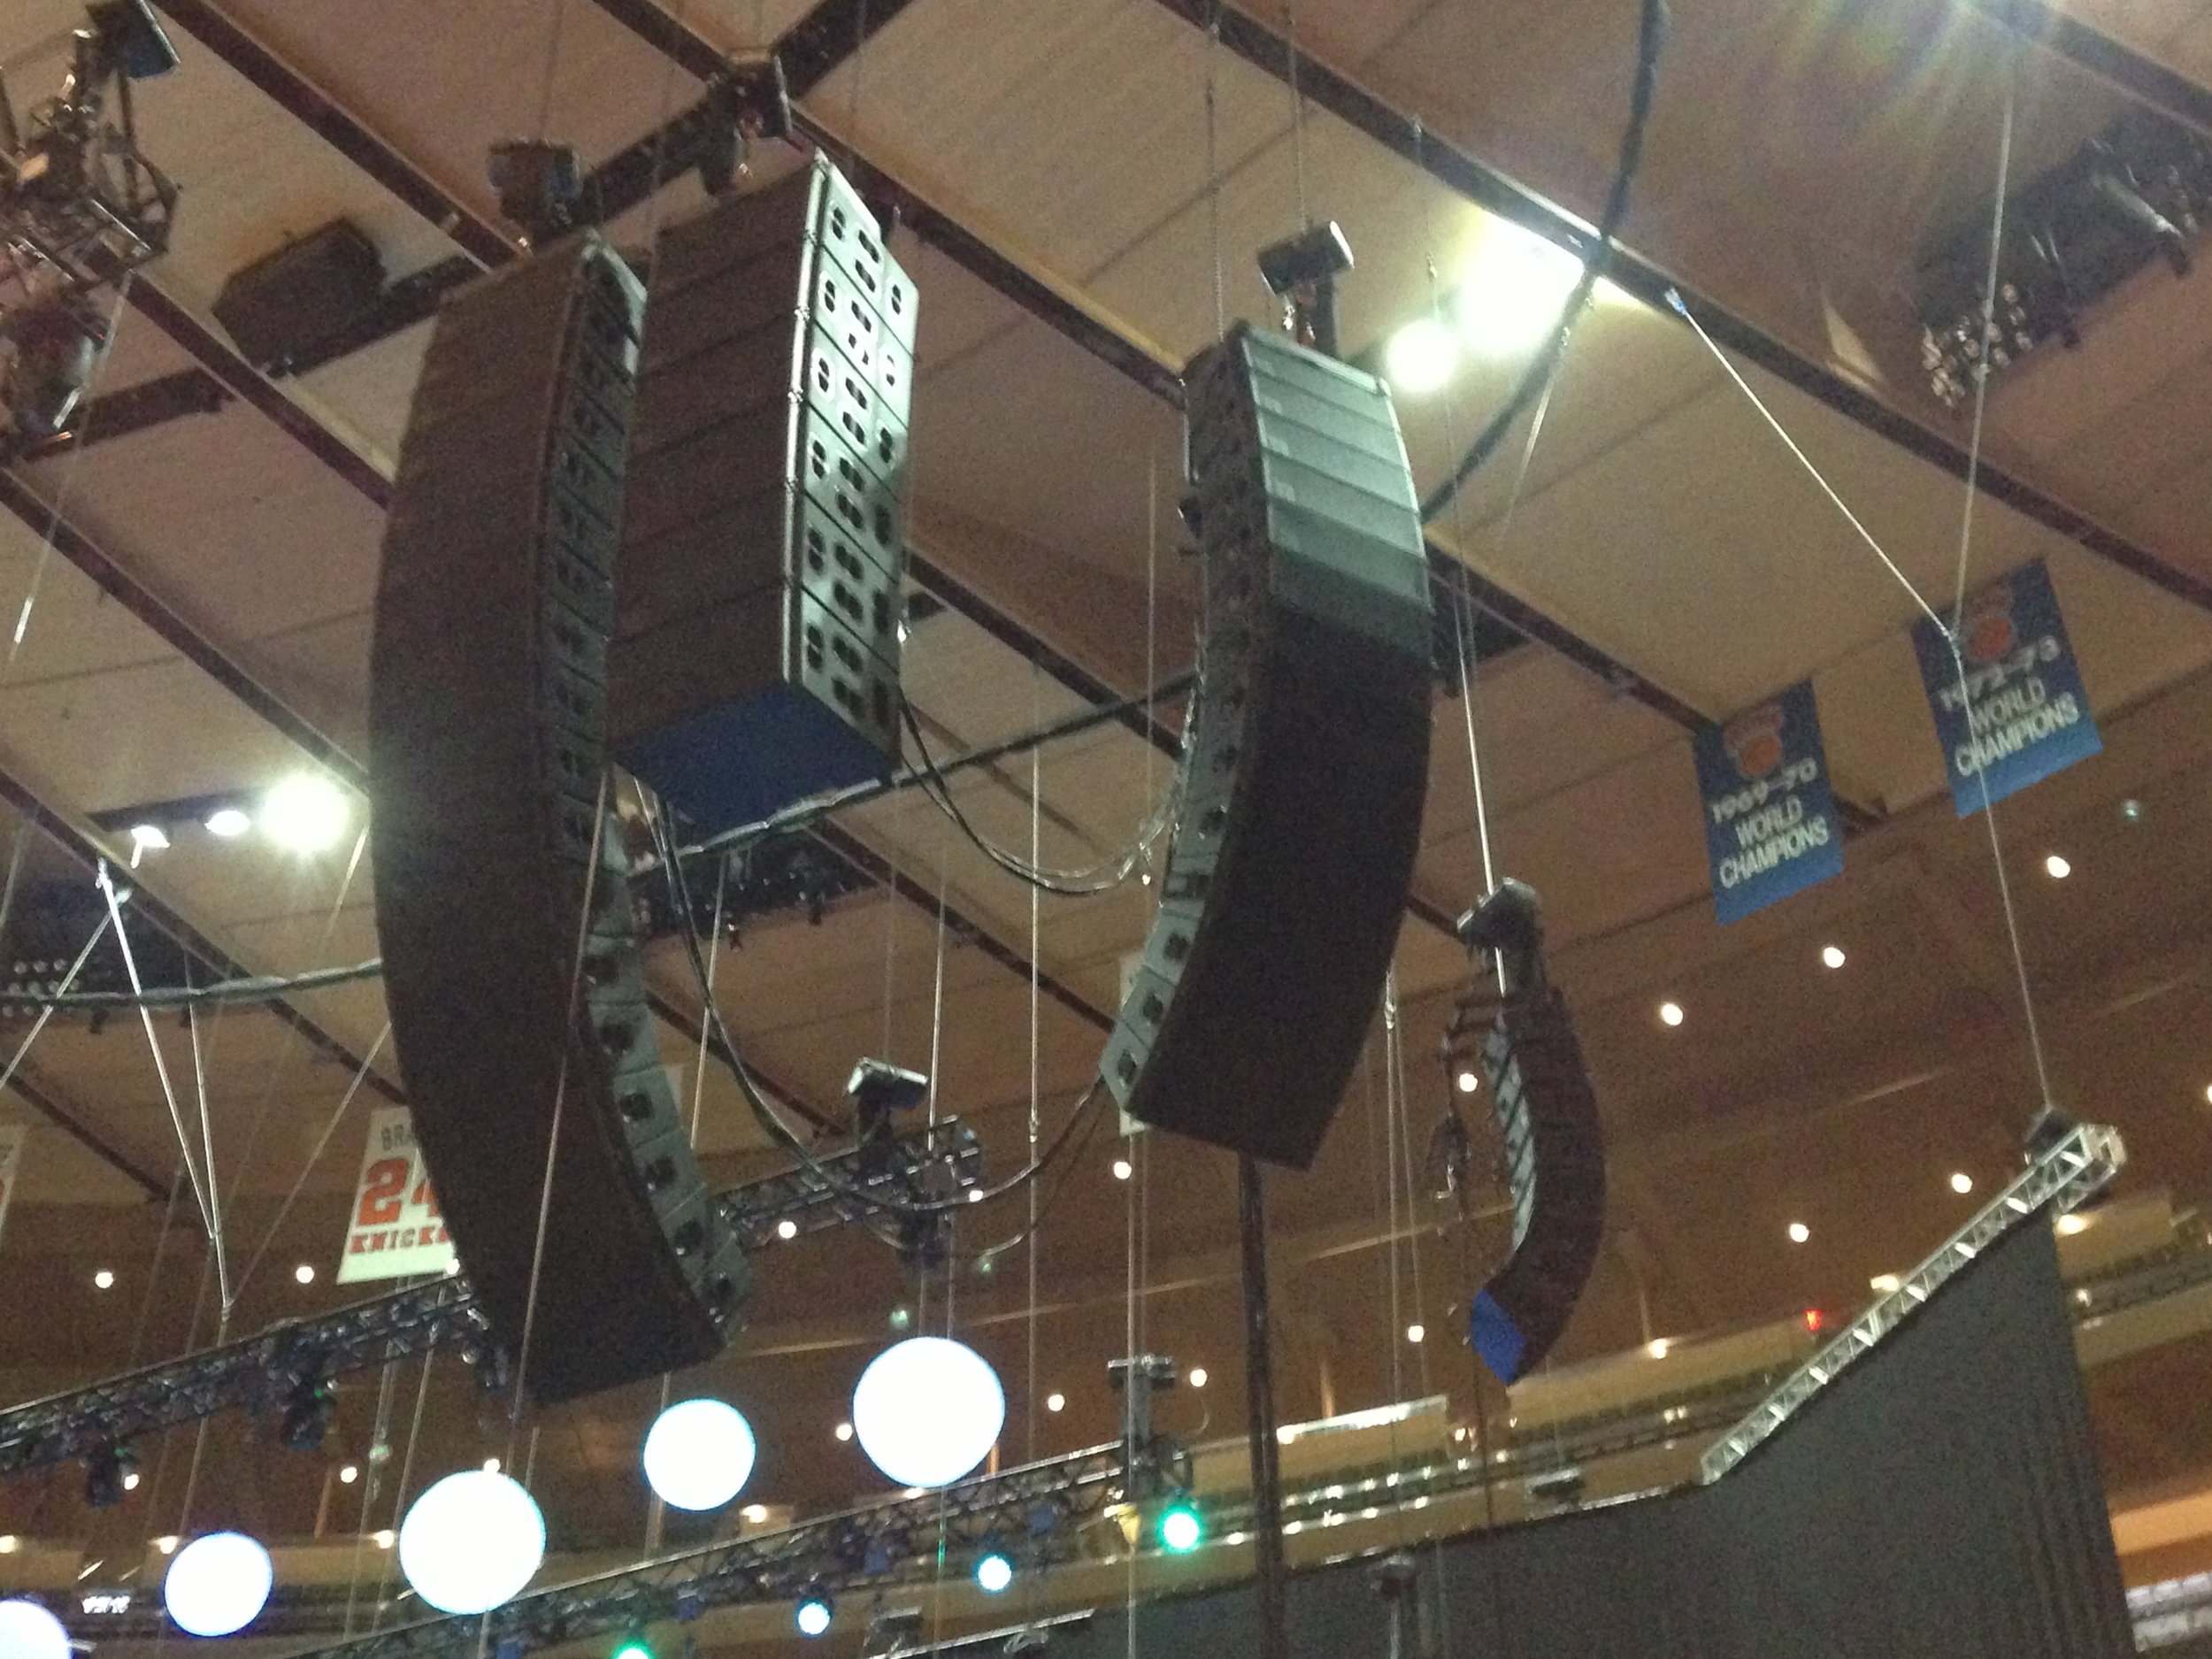 Stage Left at Madison Square Garden, 2015 - Main, Sub, Side, and Rear hangs of d&b line array.